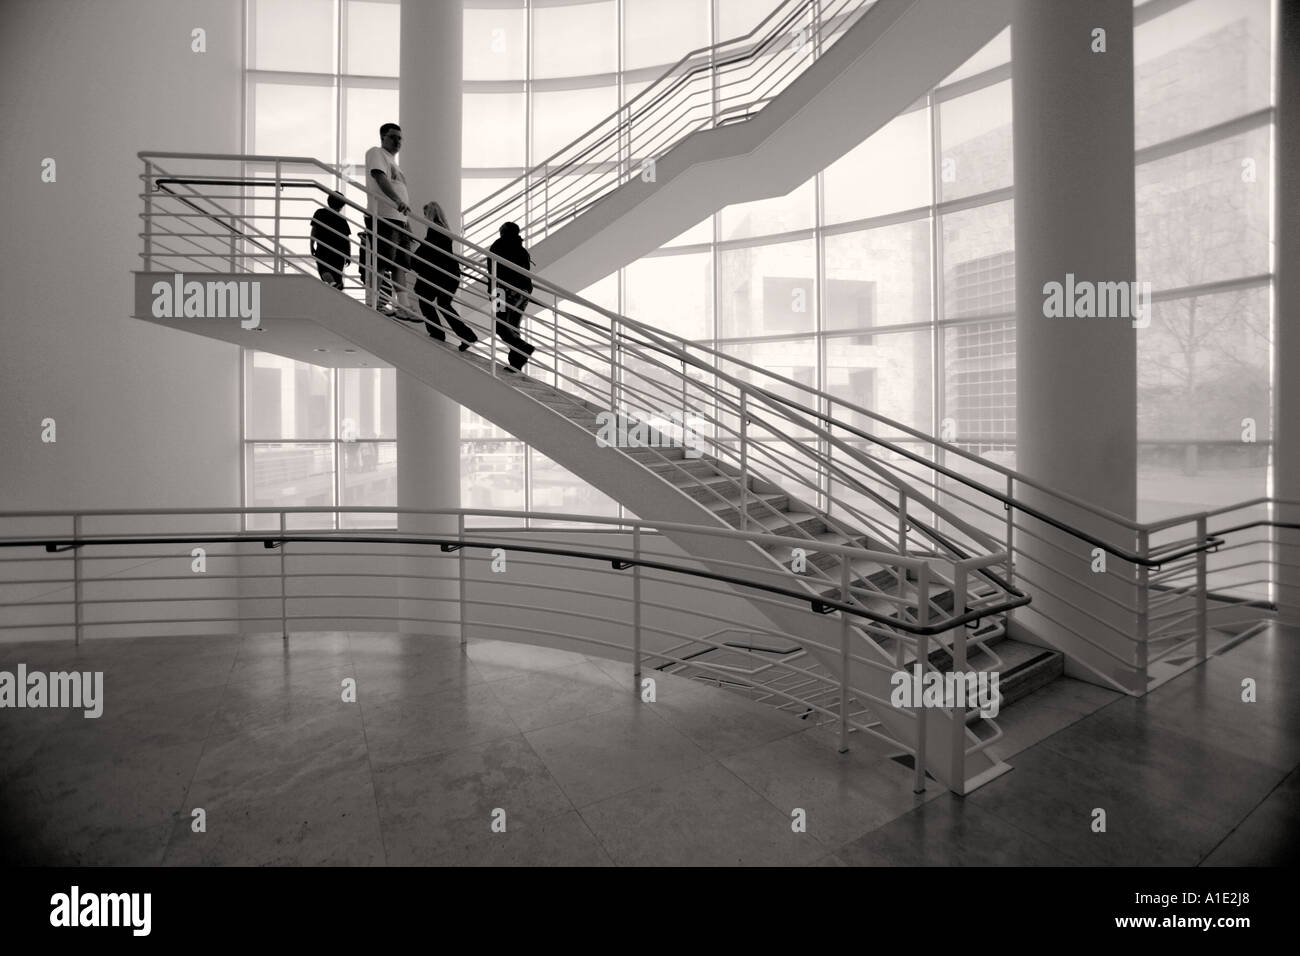 Getty Museum Los Angeles Ca Usa Interior Exterior Architectual Stock Photo Royalty Free